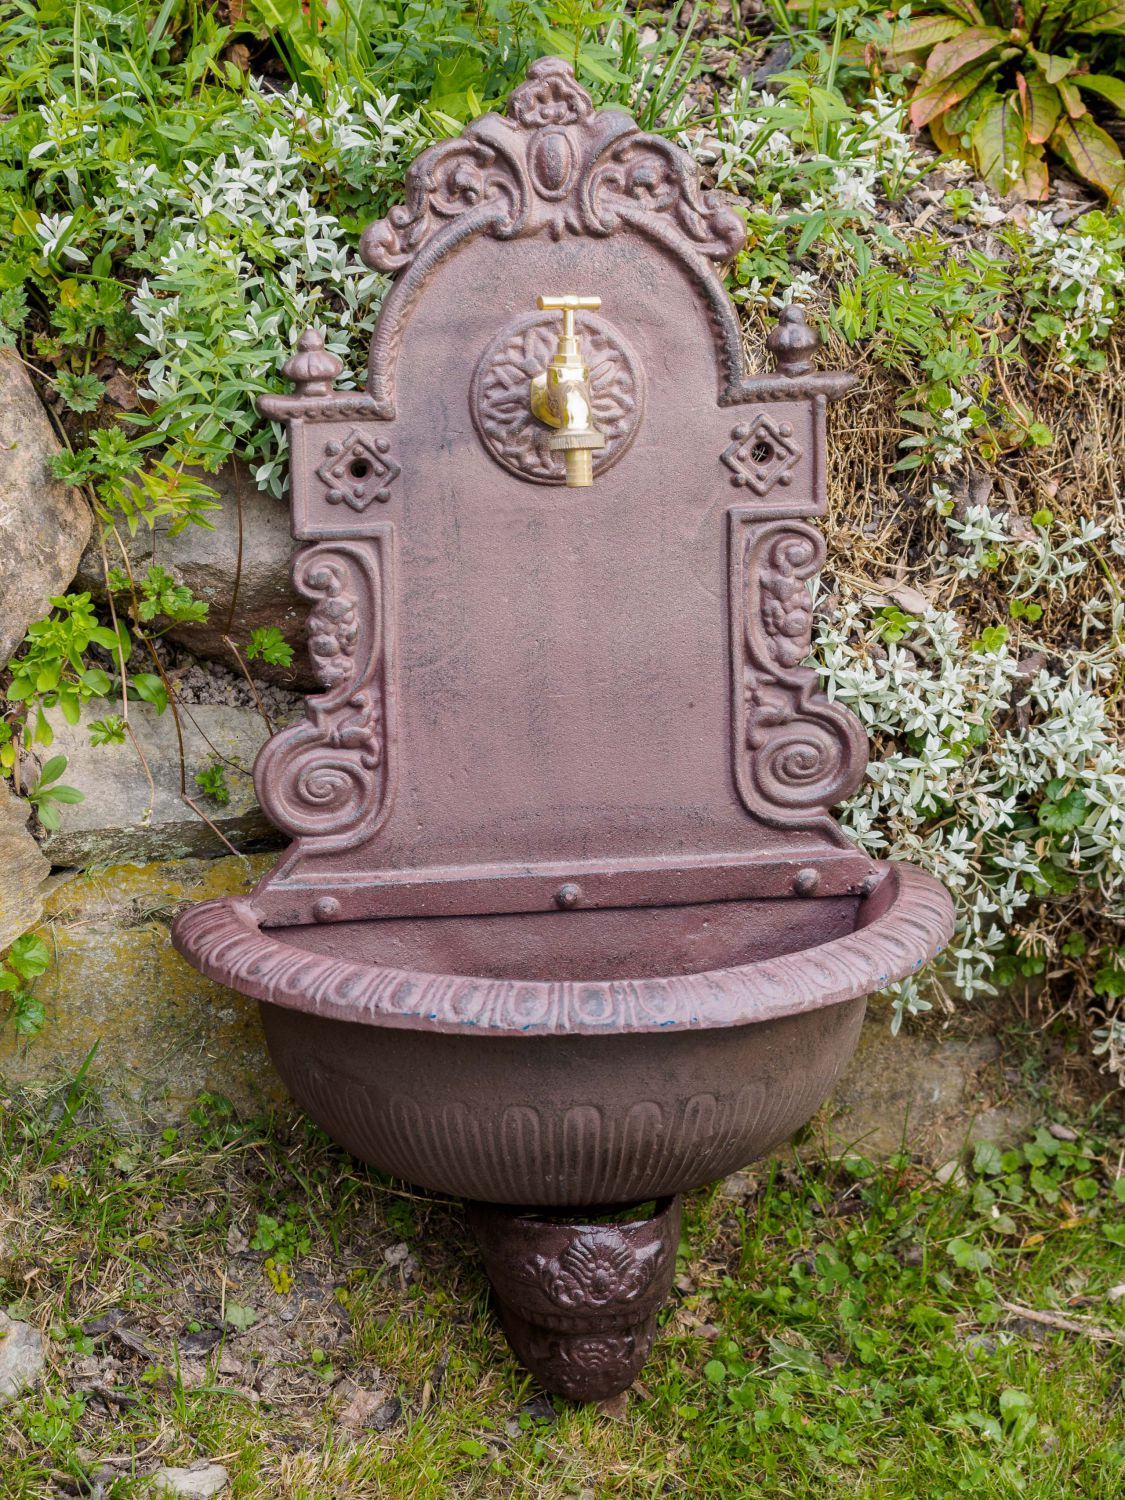 fontaine murale de jardin avec vasque fonte motif floral style antique ebay. Black Bedroom Furniture Sets. Home Design Ideas